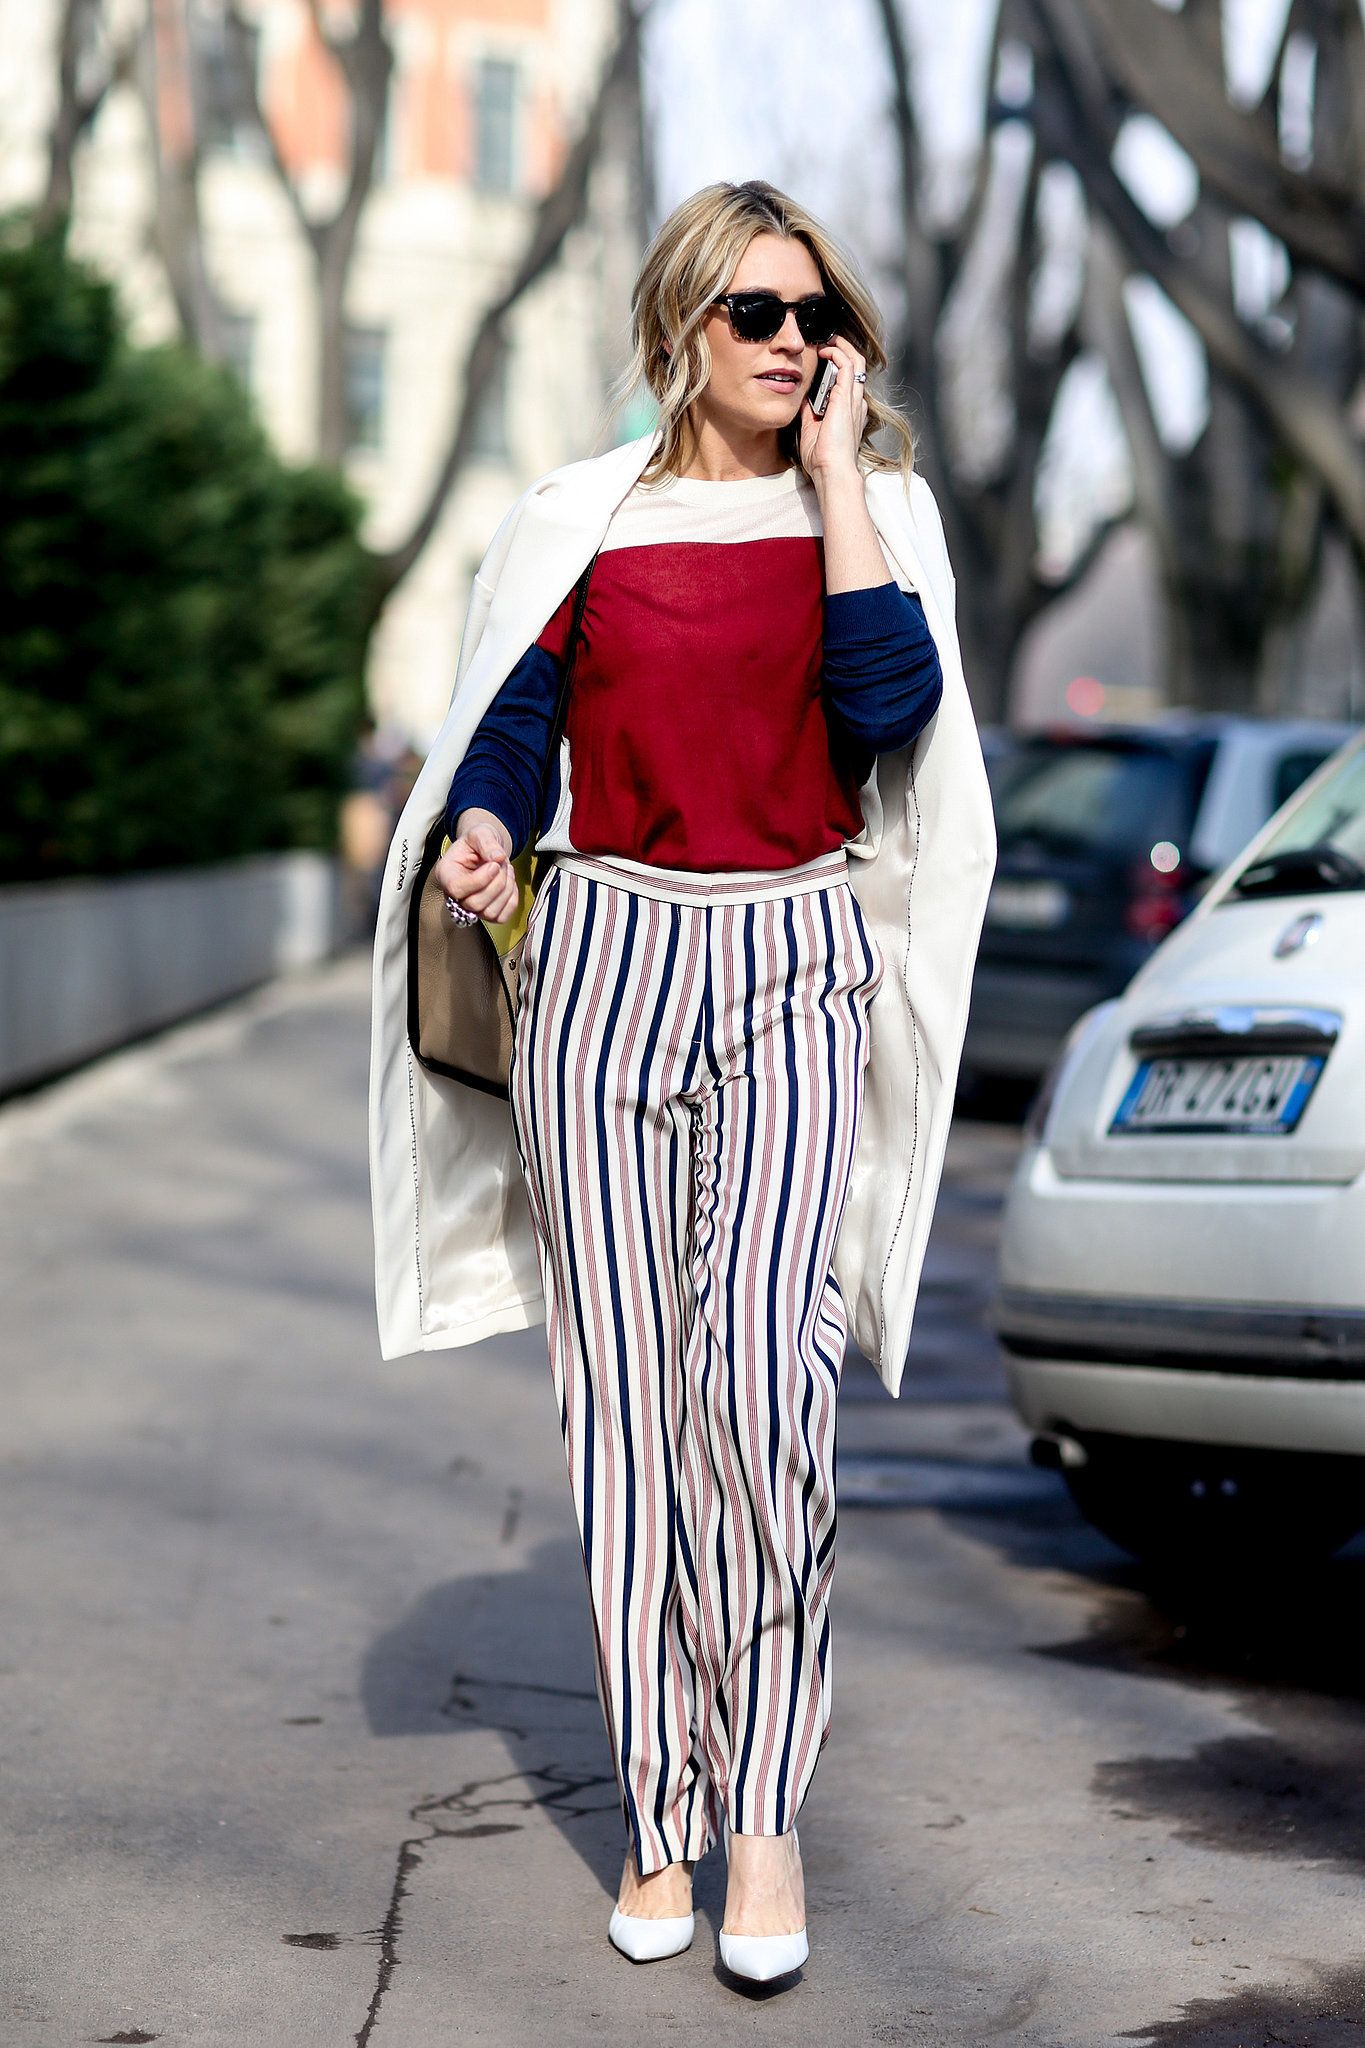 Mixing stripes and colorblocking with ease. #Streetstyle #MFW Fall 2014